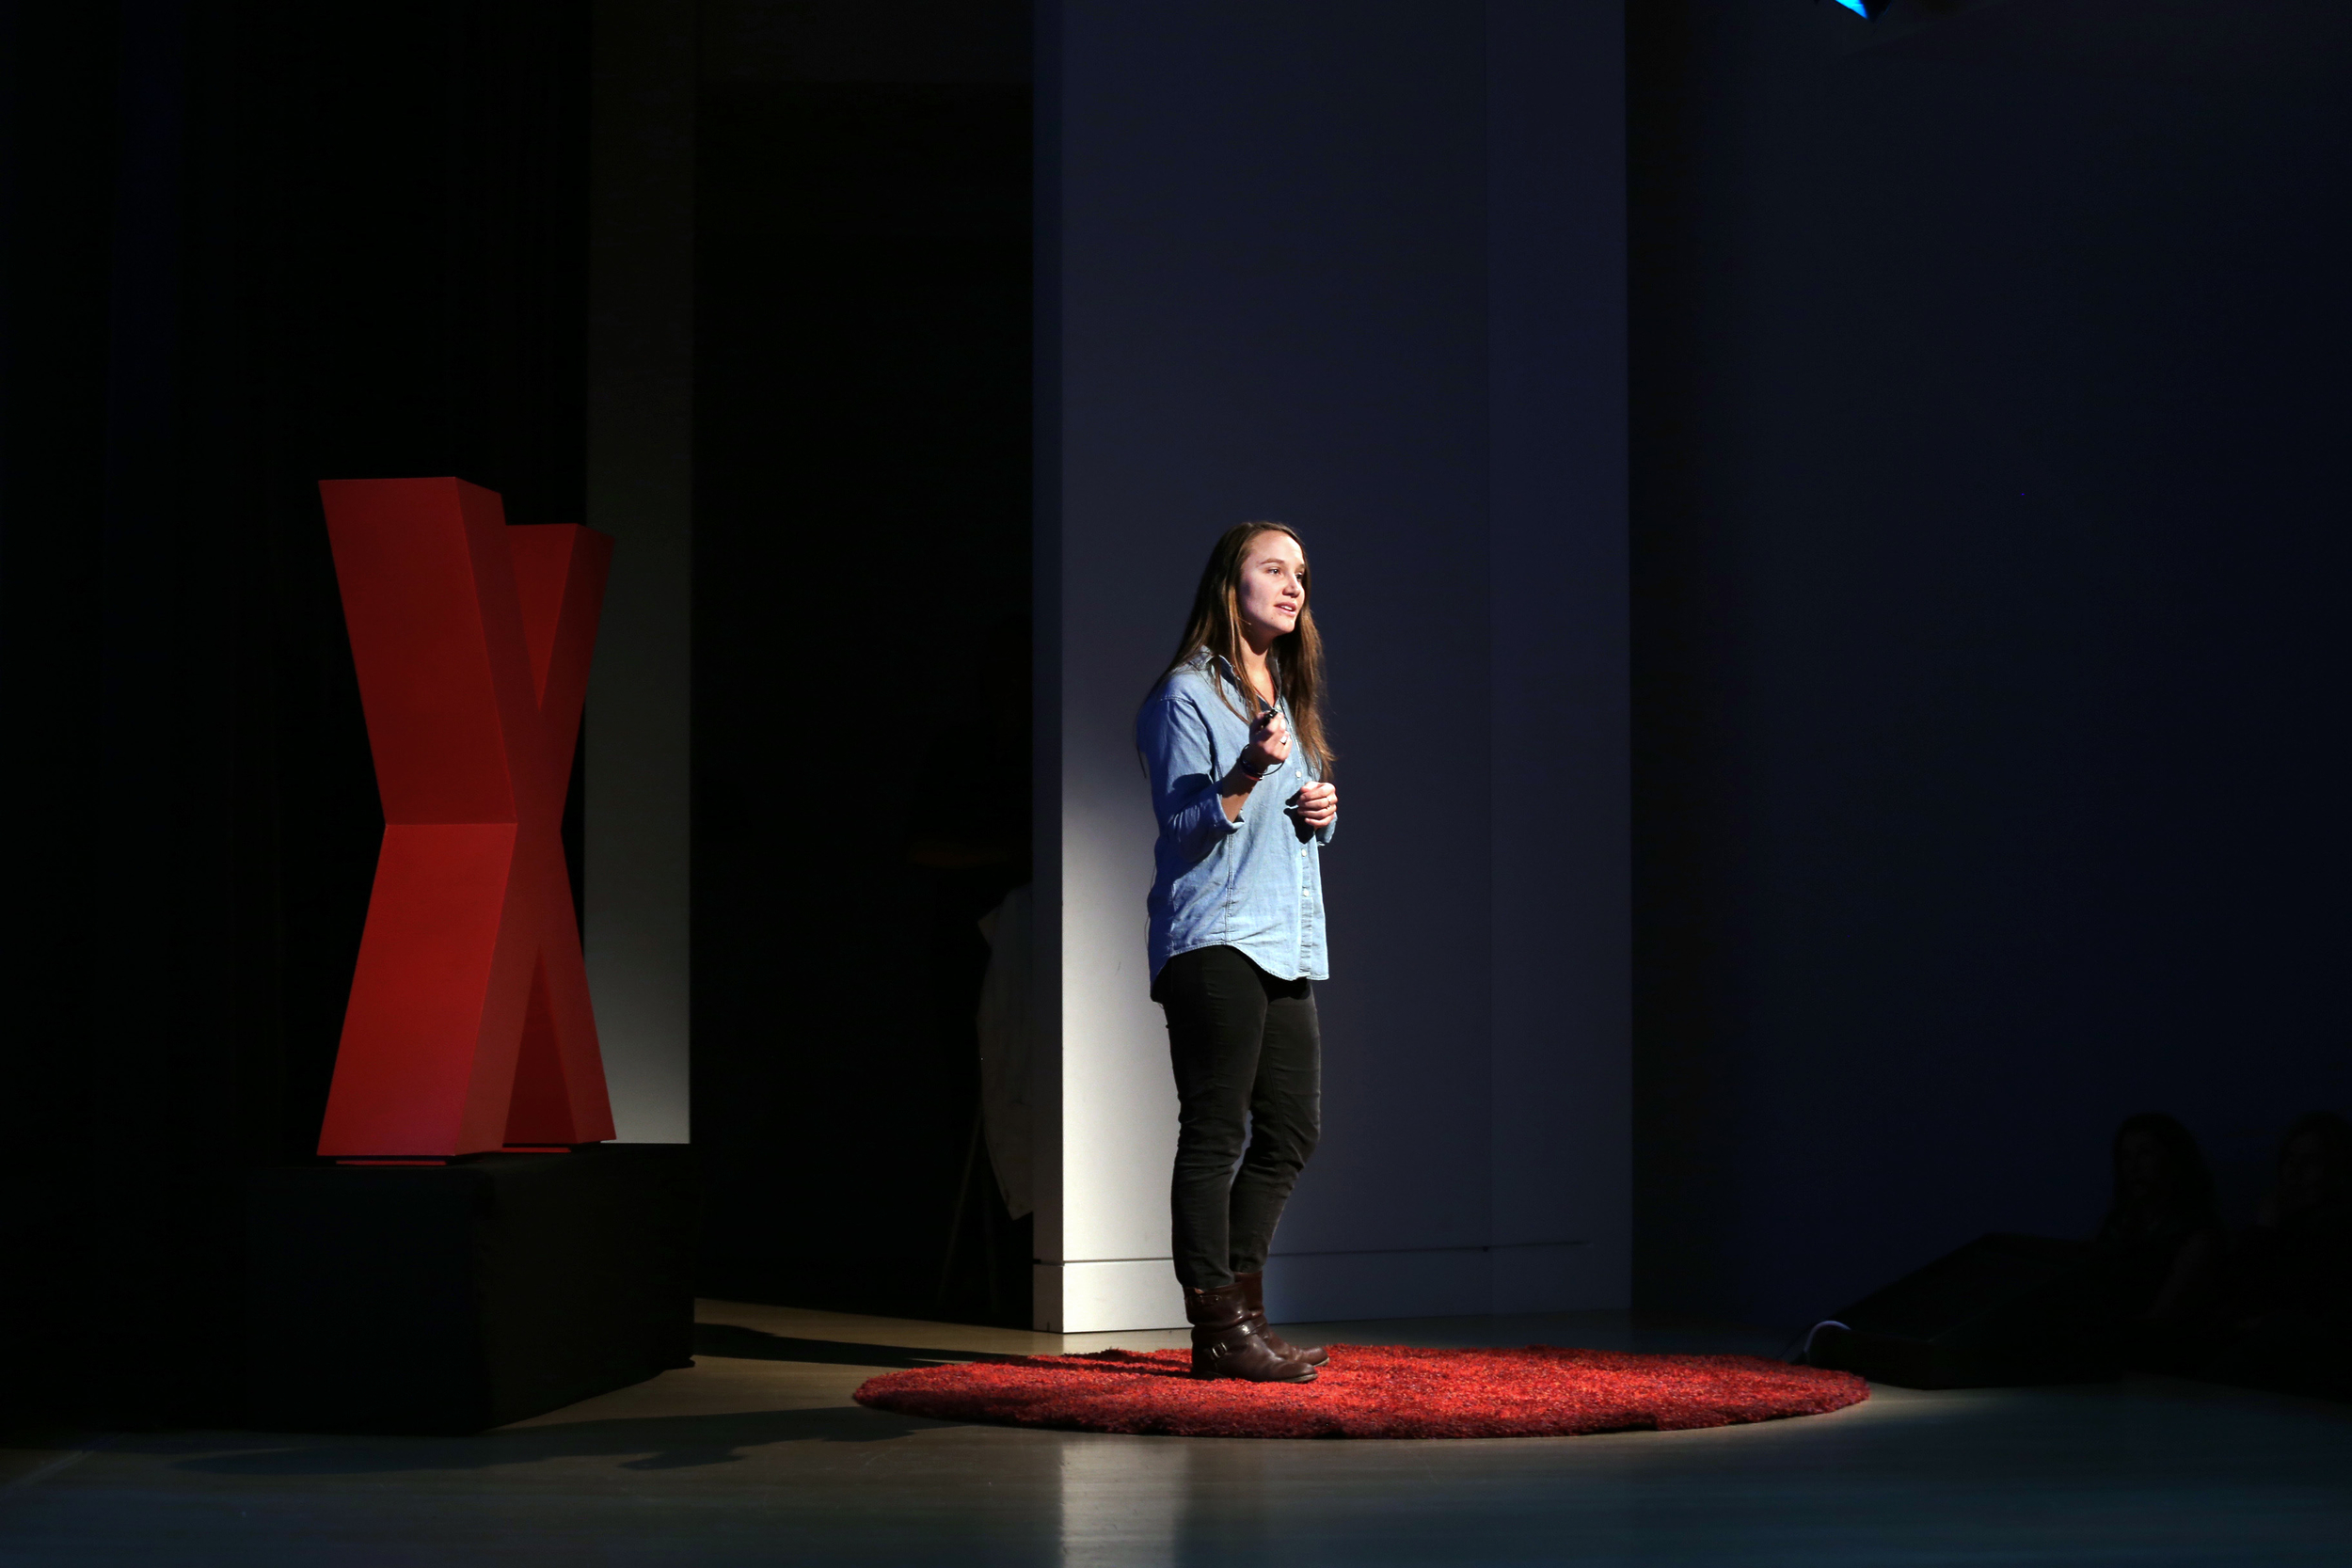 Sarah Menzies speaks at the TEDxSacramento event on December 12, 2014. Photo by: Phil America.